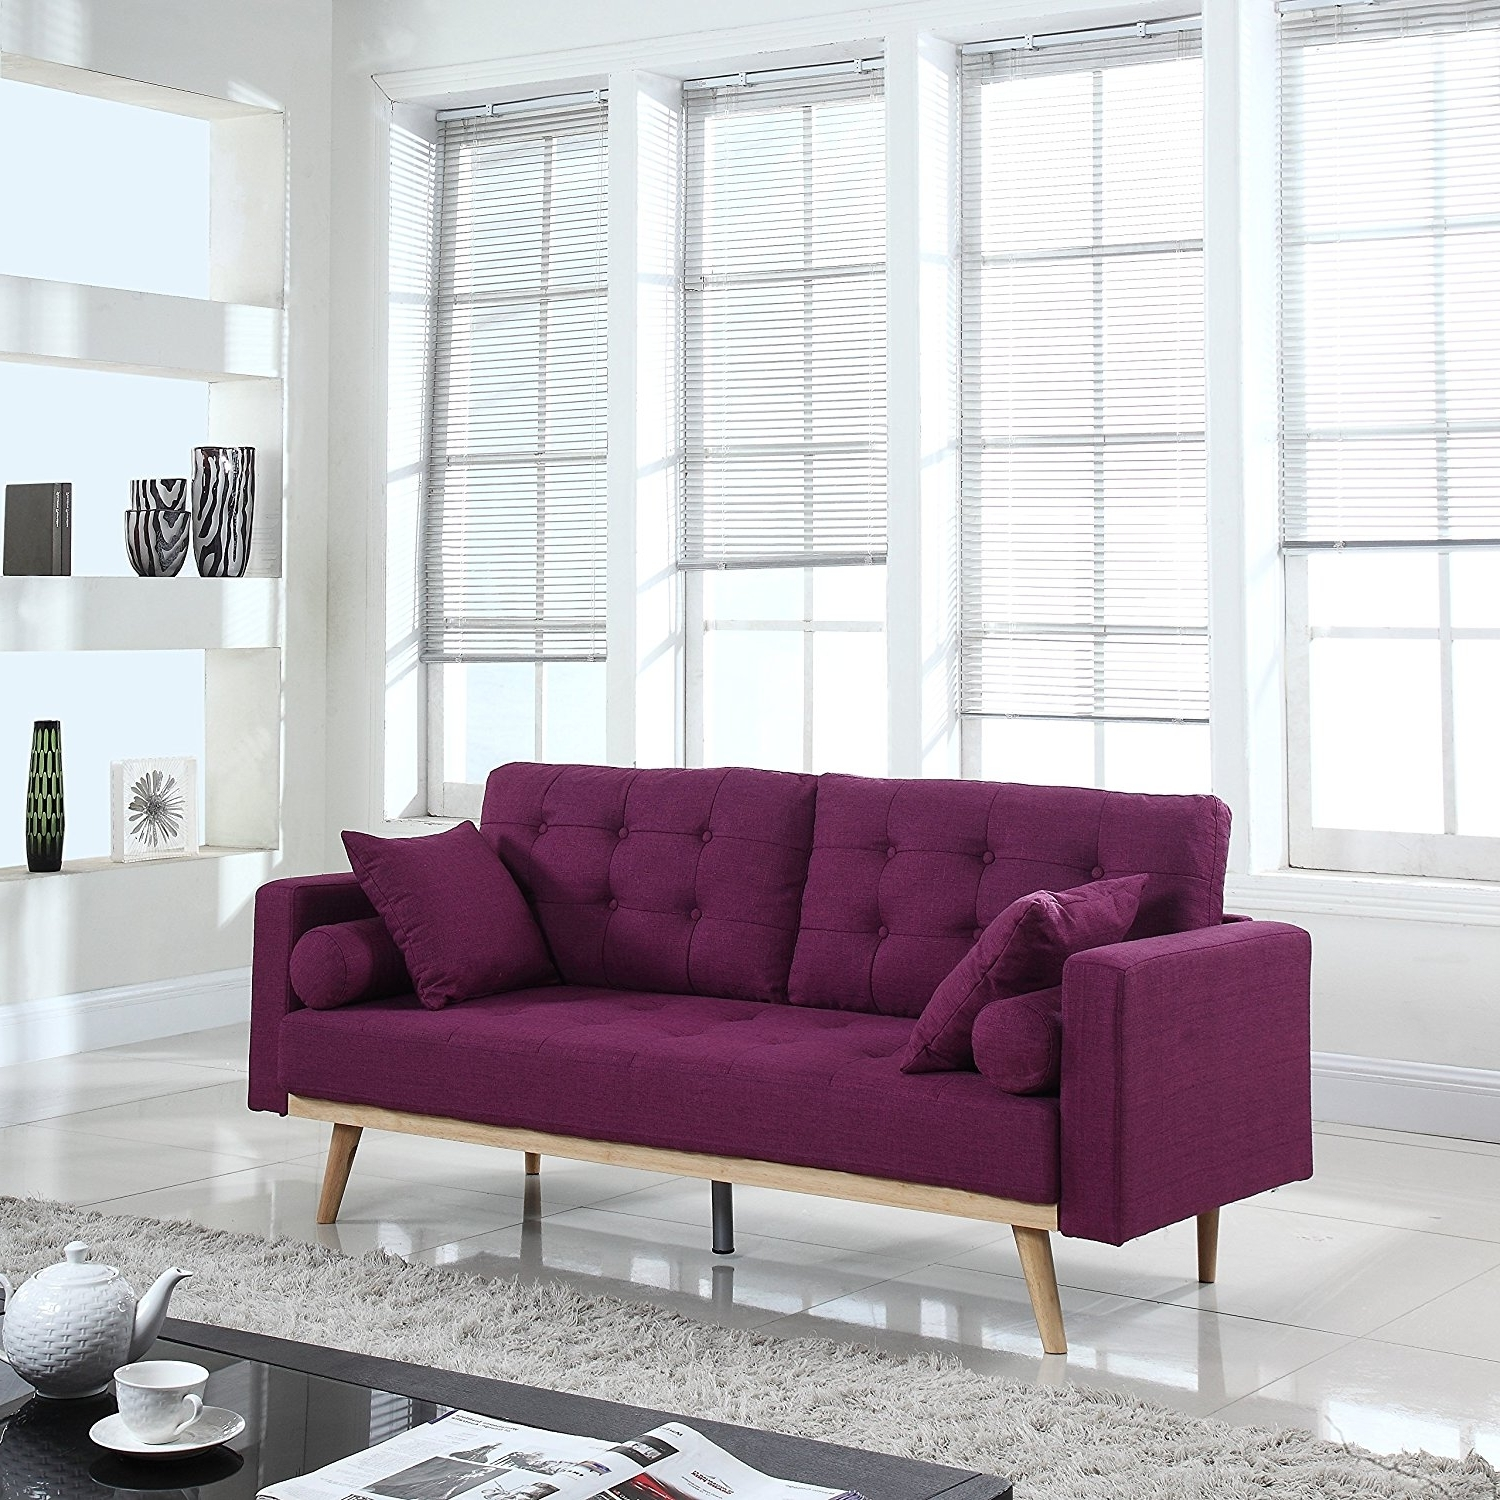 Favorite Amazon: Mid Century Modern Tufted Linen Fabric Sofa (Purple For Tufted Linen Sofas (View 15 of 15)